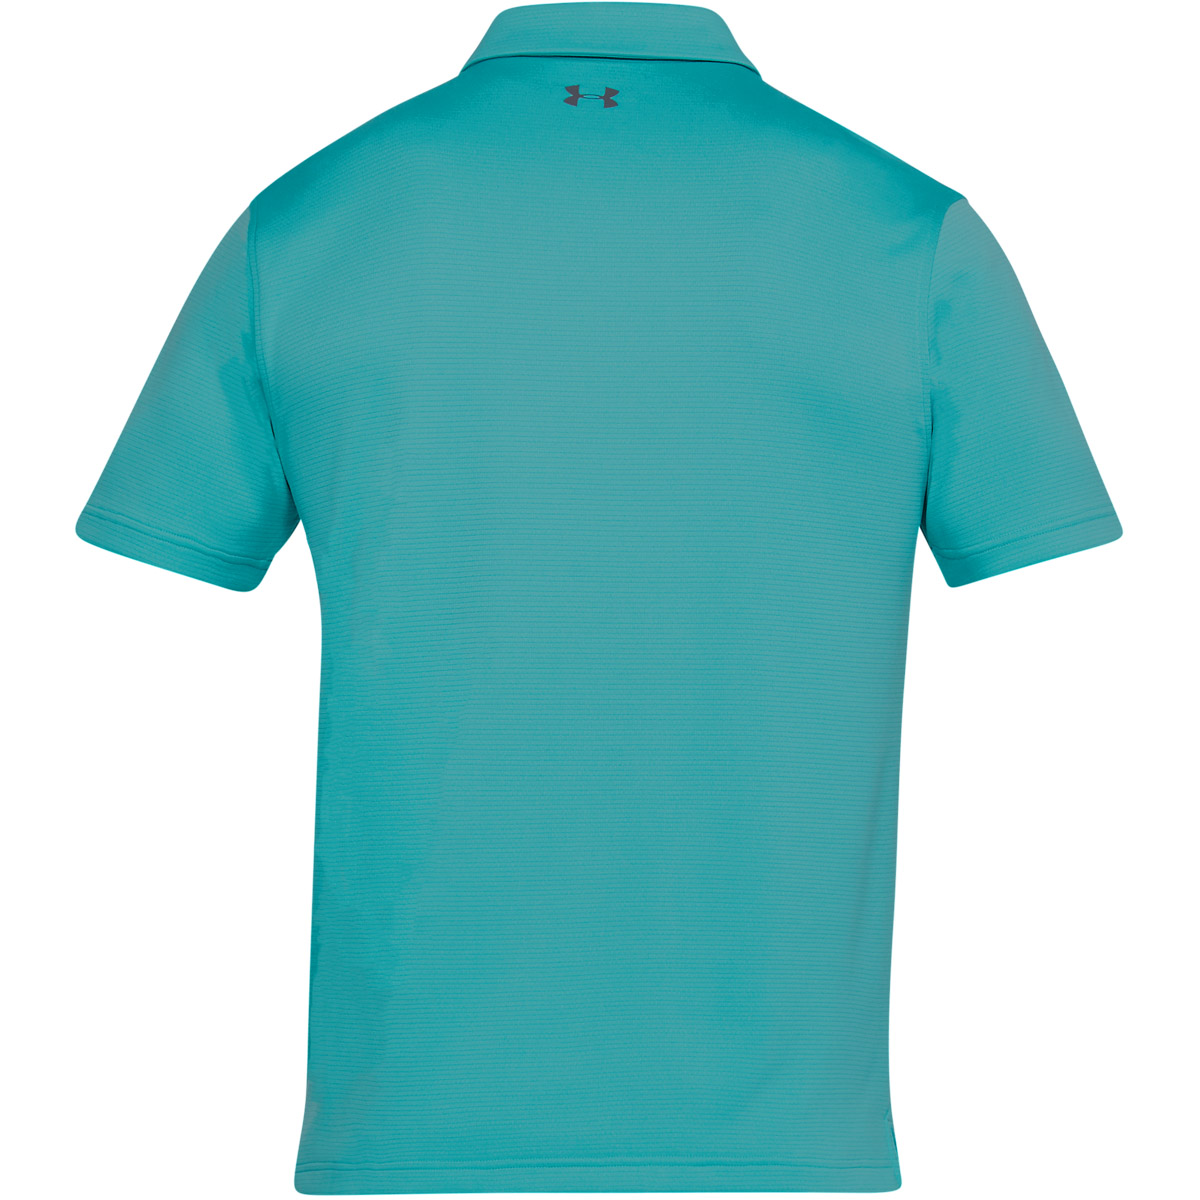 Under-Armour-Mens-2019-Golf-Tech-Wicking-Textured-Soft-Light-Polo-Shirt thumbnail 69